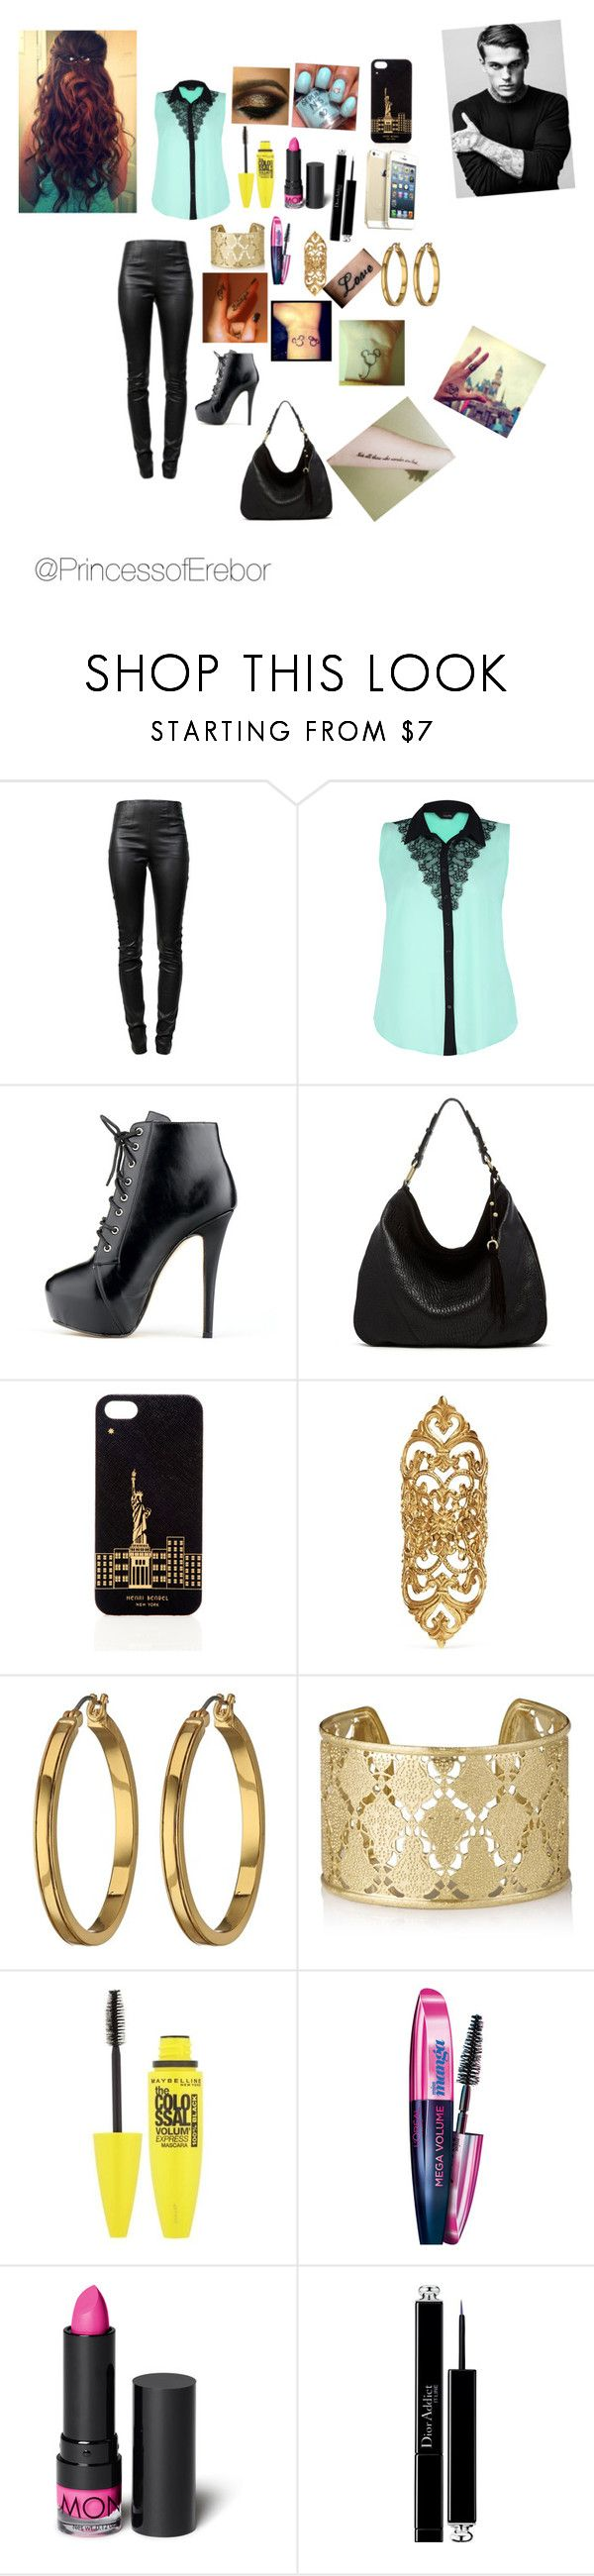 """Lunch with Stephen"" by batmanswife1 ❤ liked on Polyvore featuring Alexander Wang, Ella Moss, Henri Bendel, Ela Stone, Novo, Lauren Ralph Lauren, Shyla, L'Oréal Paris, Monki and Christian Dior"